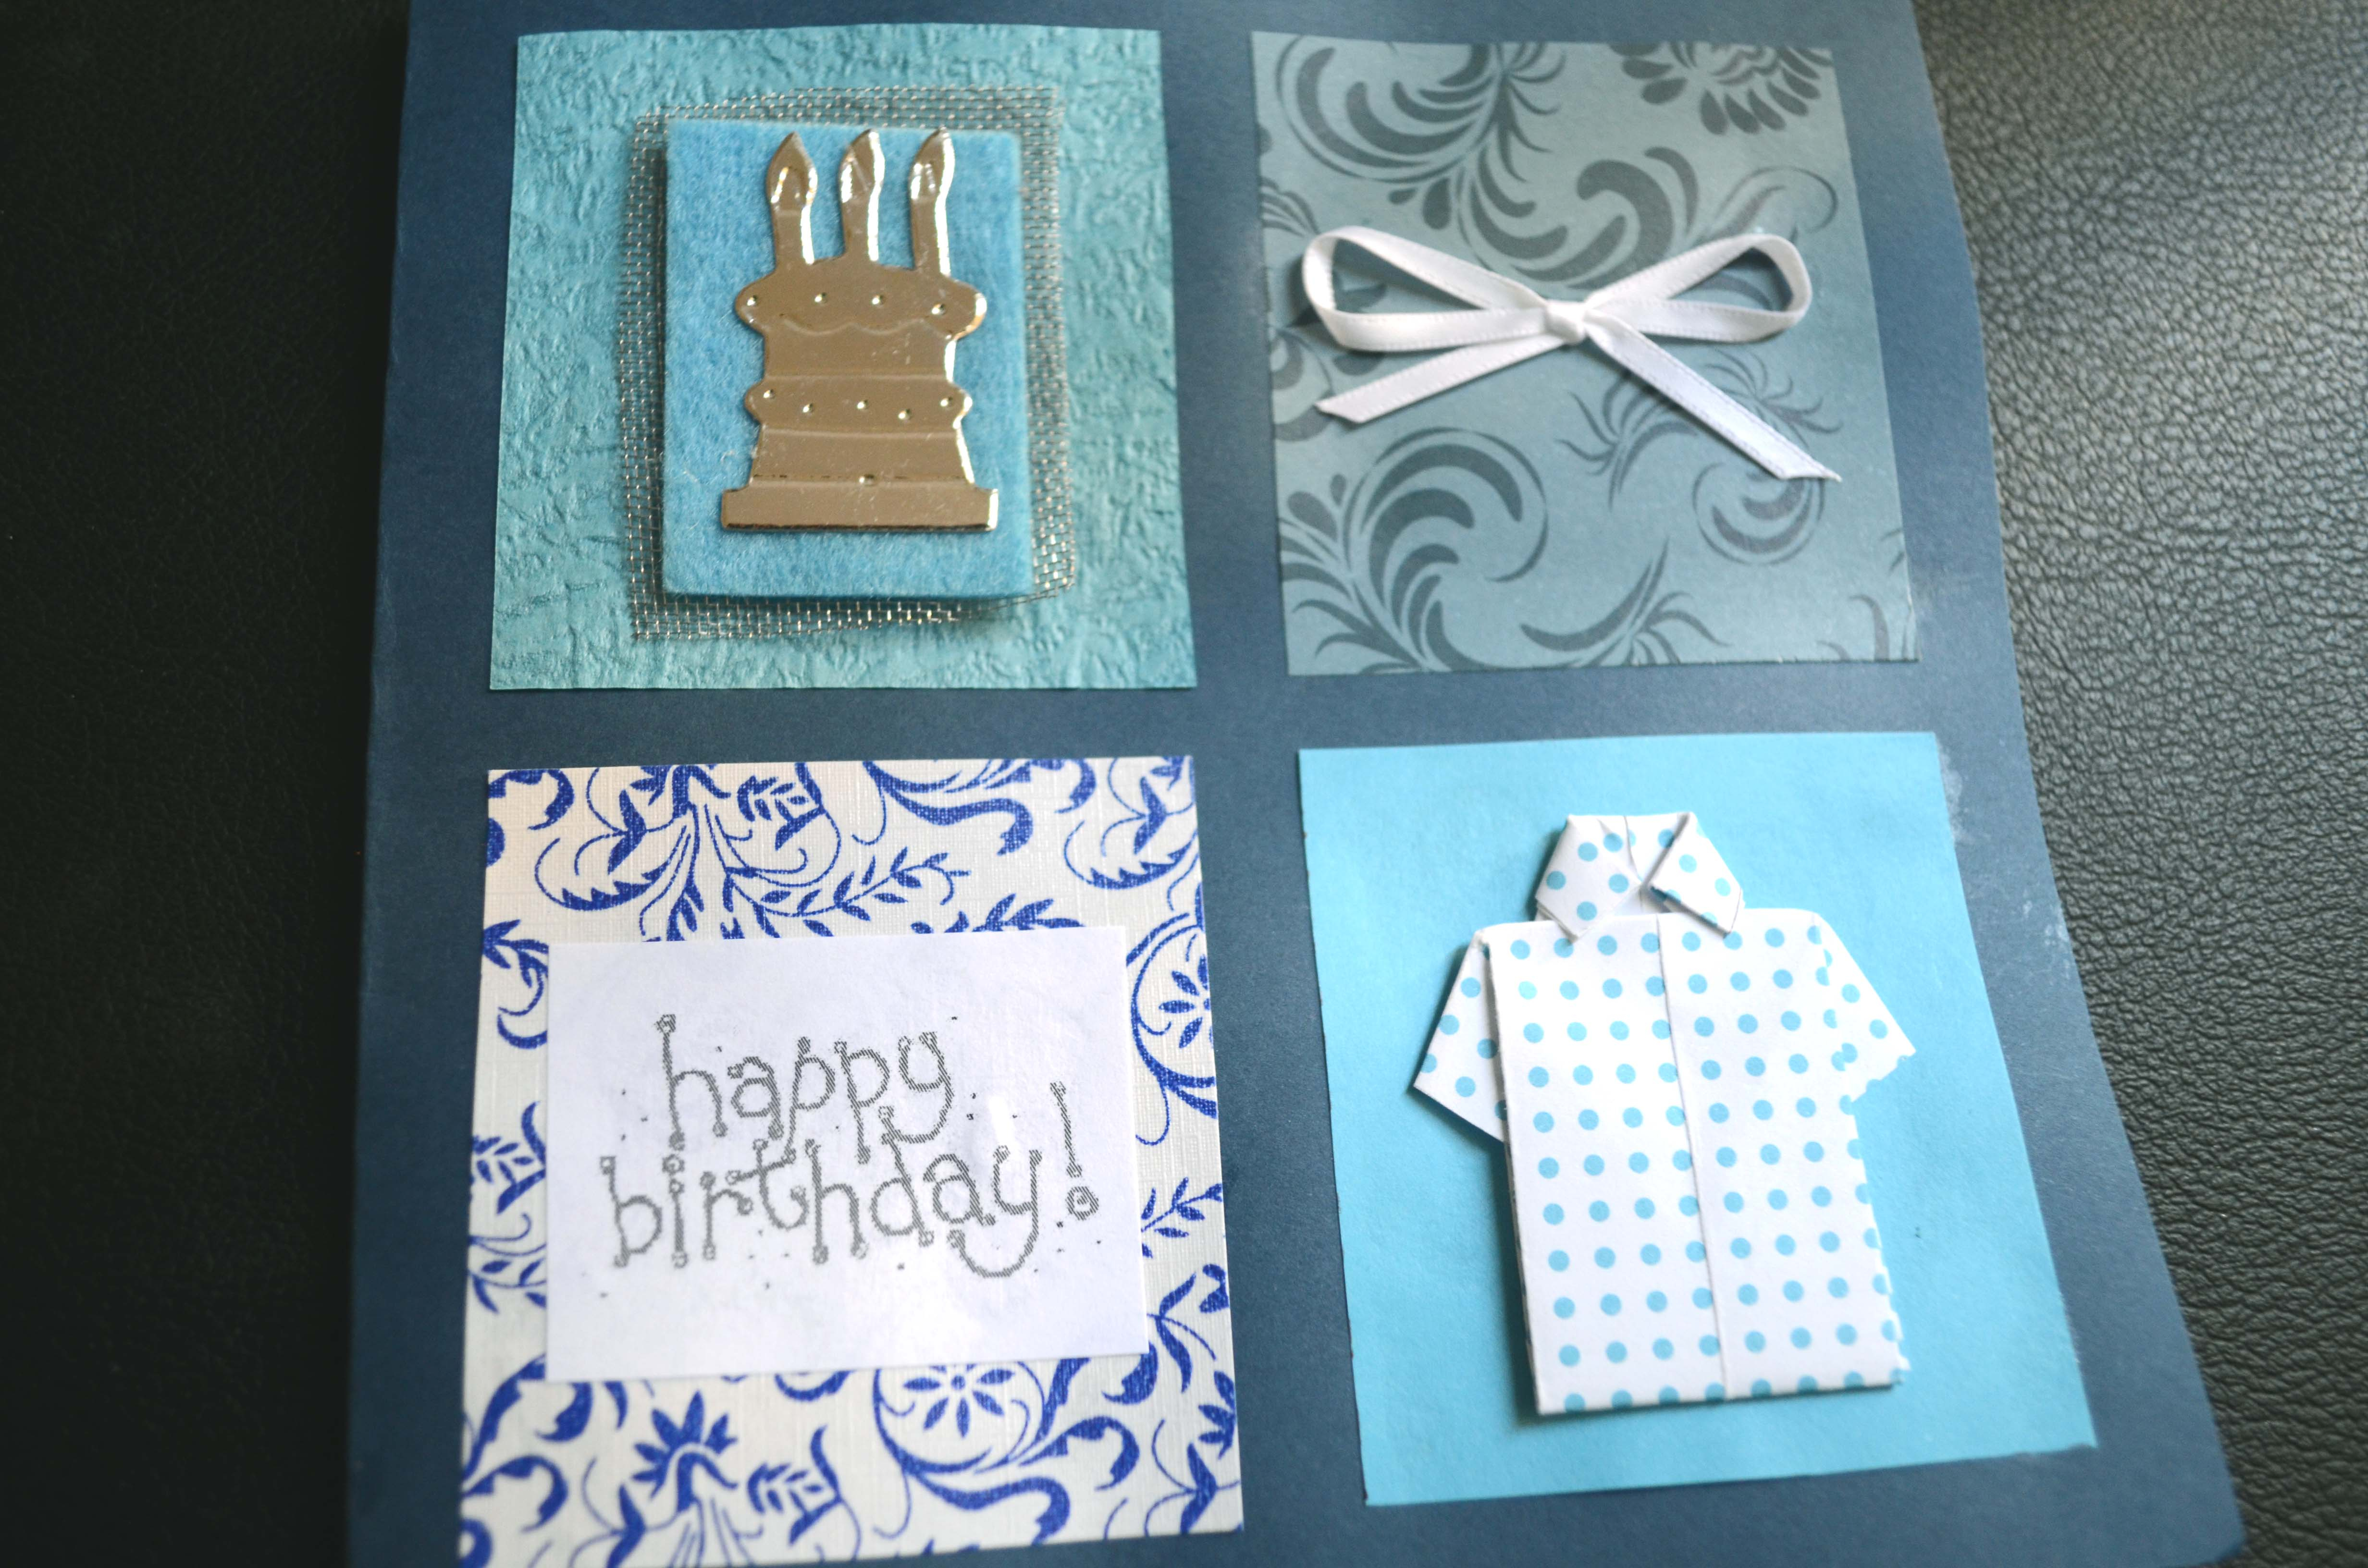 Handmade Birthday Card Ideas For Dad 98 Handmade Birthday Cards For Father Shirt Tie Greeting Card For